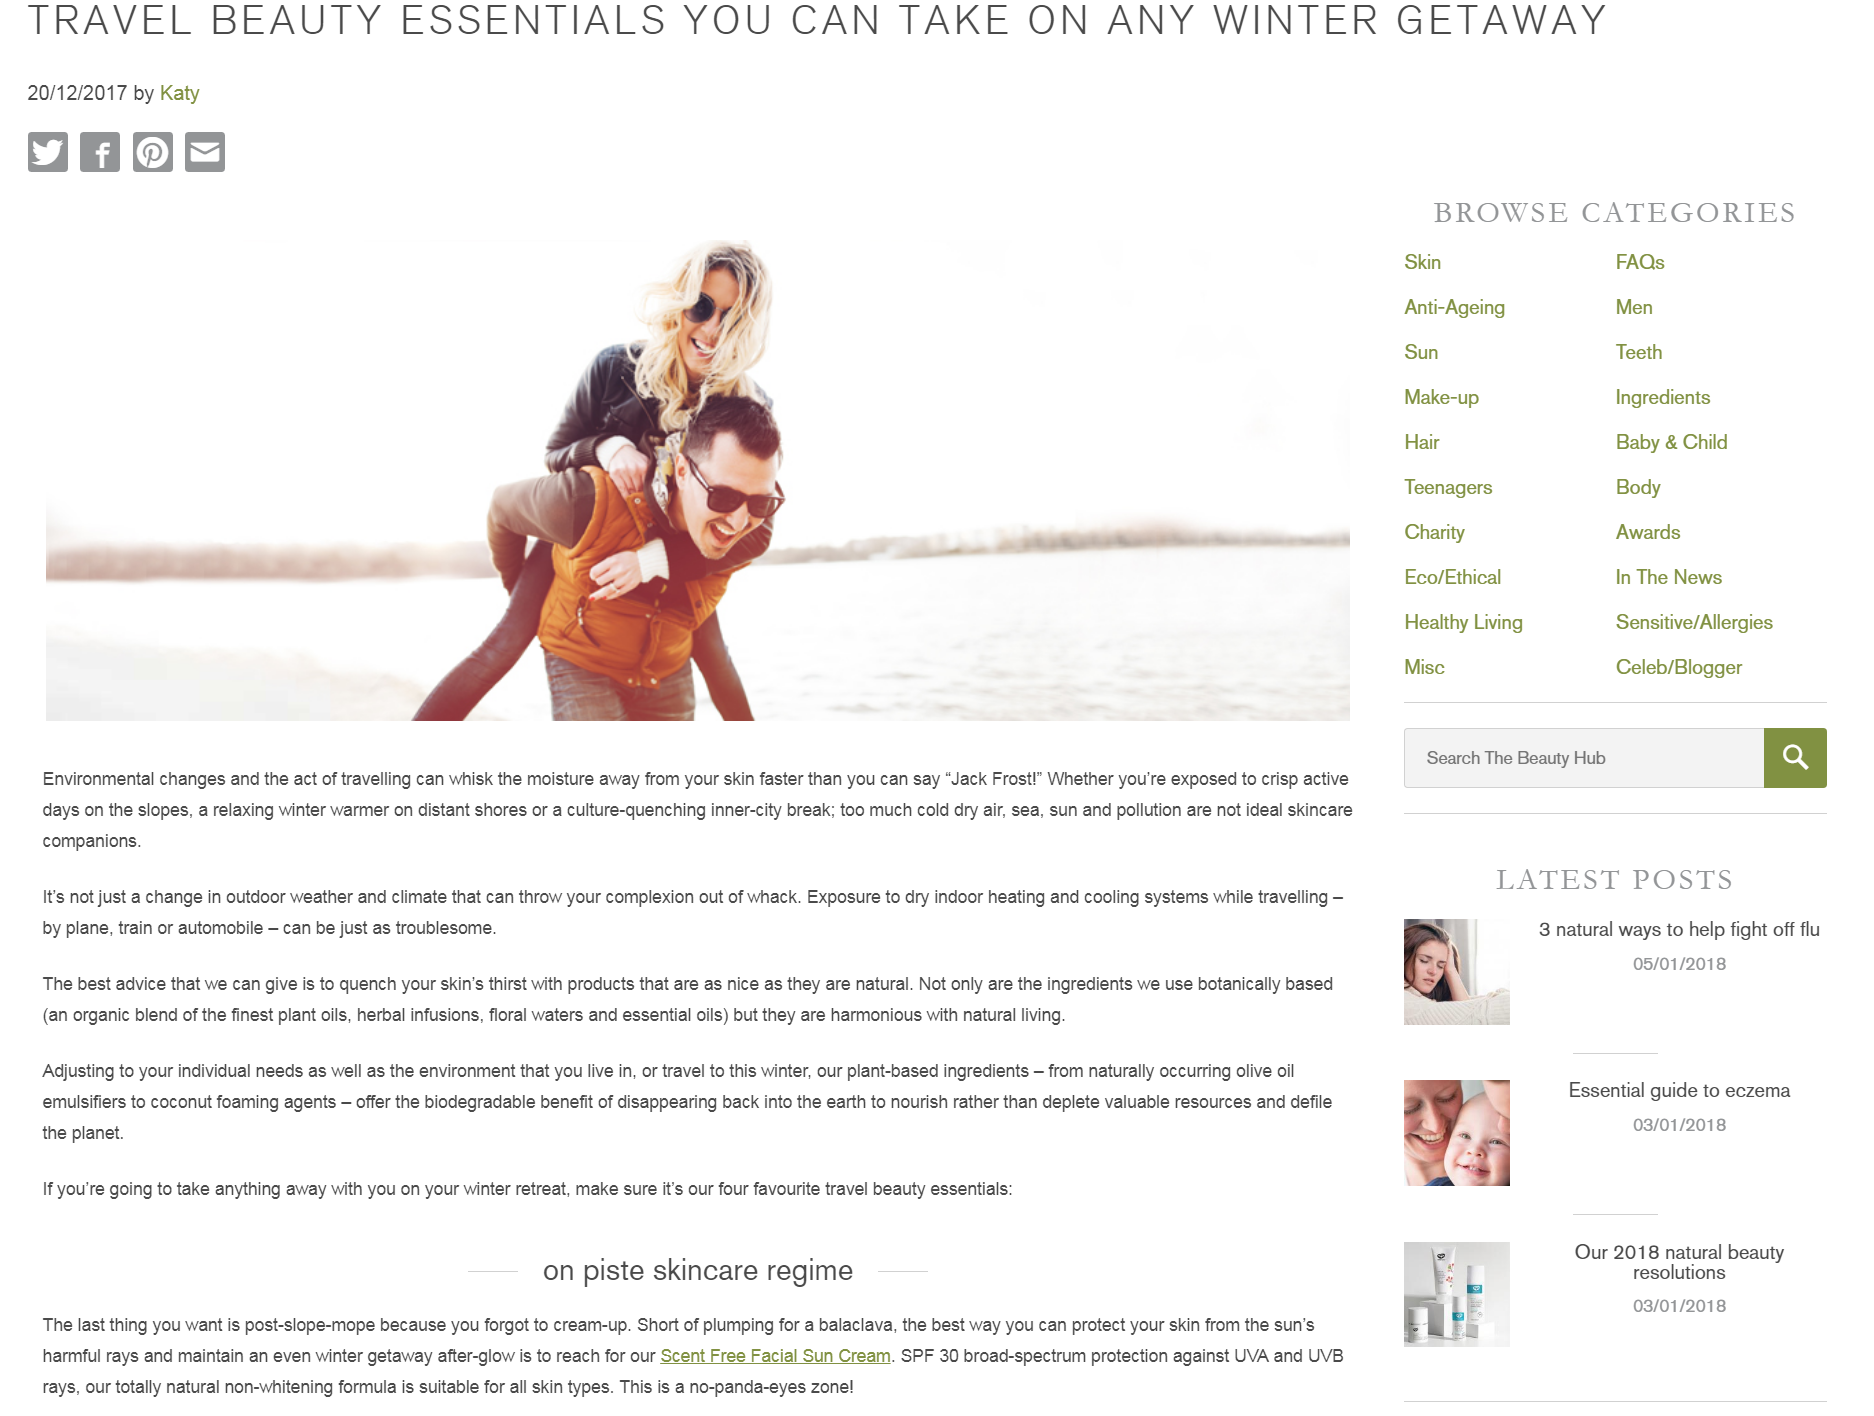 Travel beauty essentials for a winter getaway - Green People Beauty Hub blog